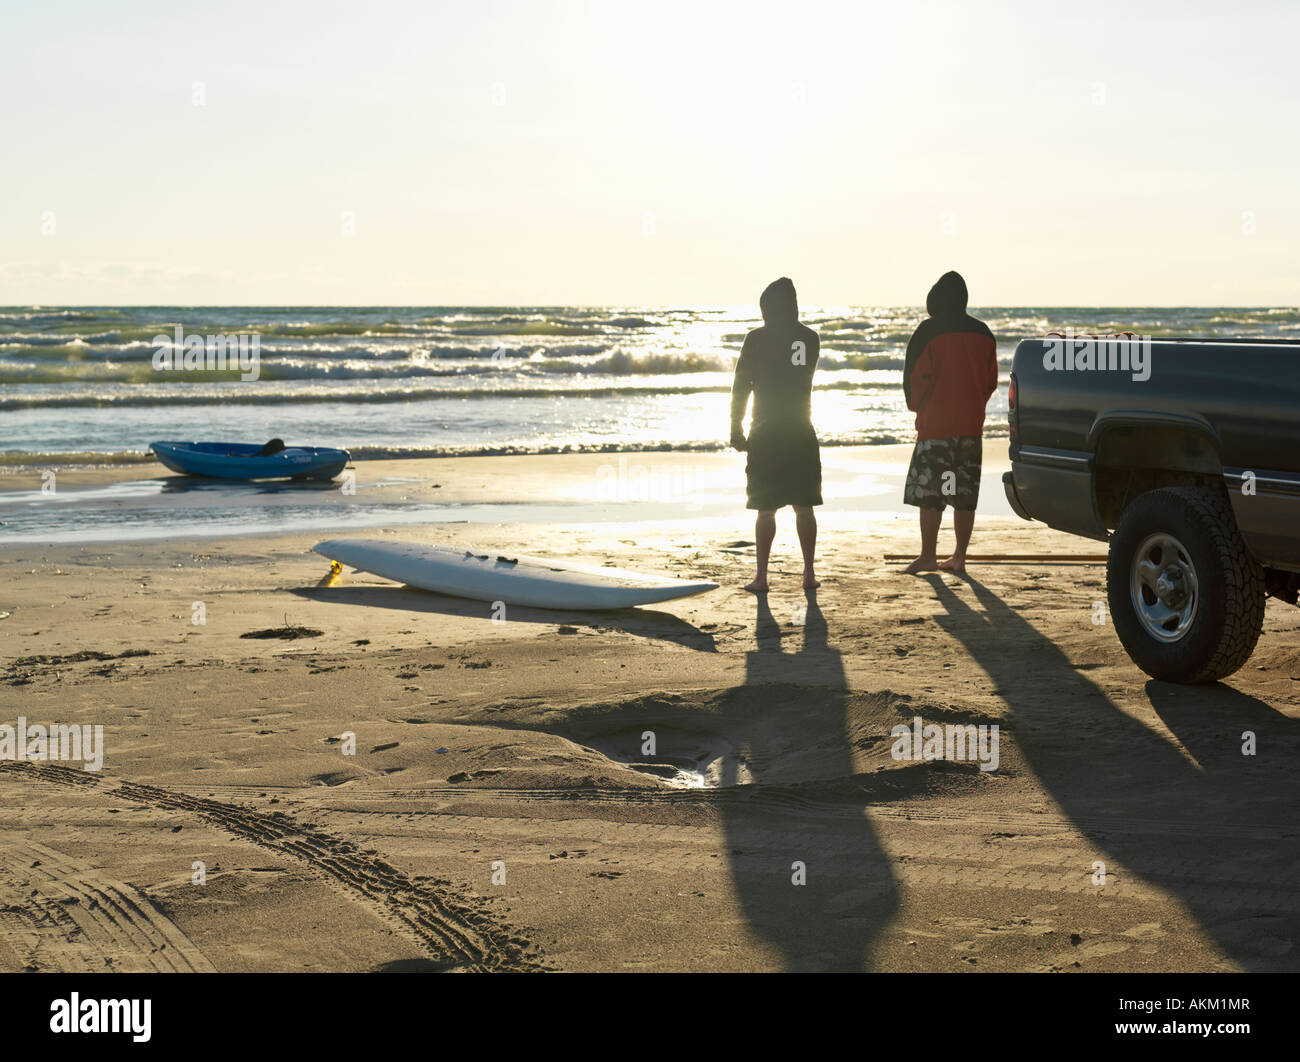 Canada Ontario Sauble Beach two male friends early twenties at beach with surf board and kayak looking out towards - Stock Image